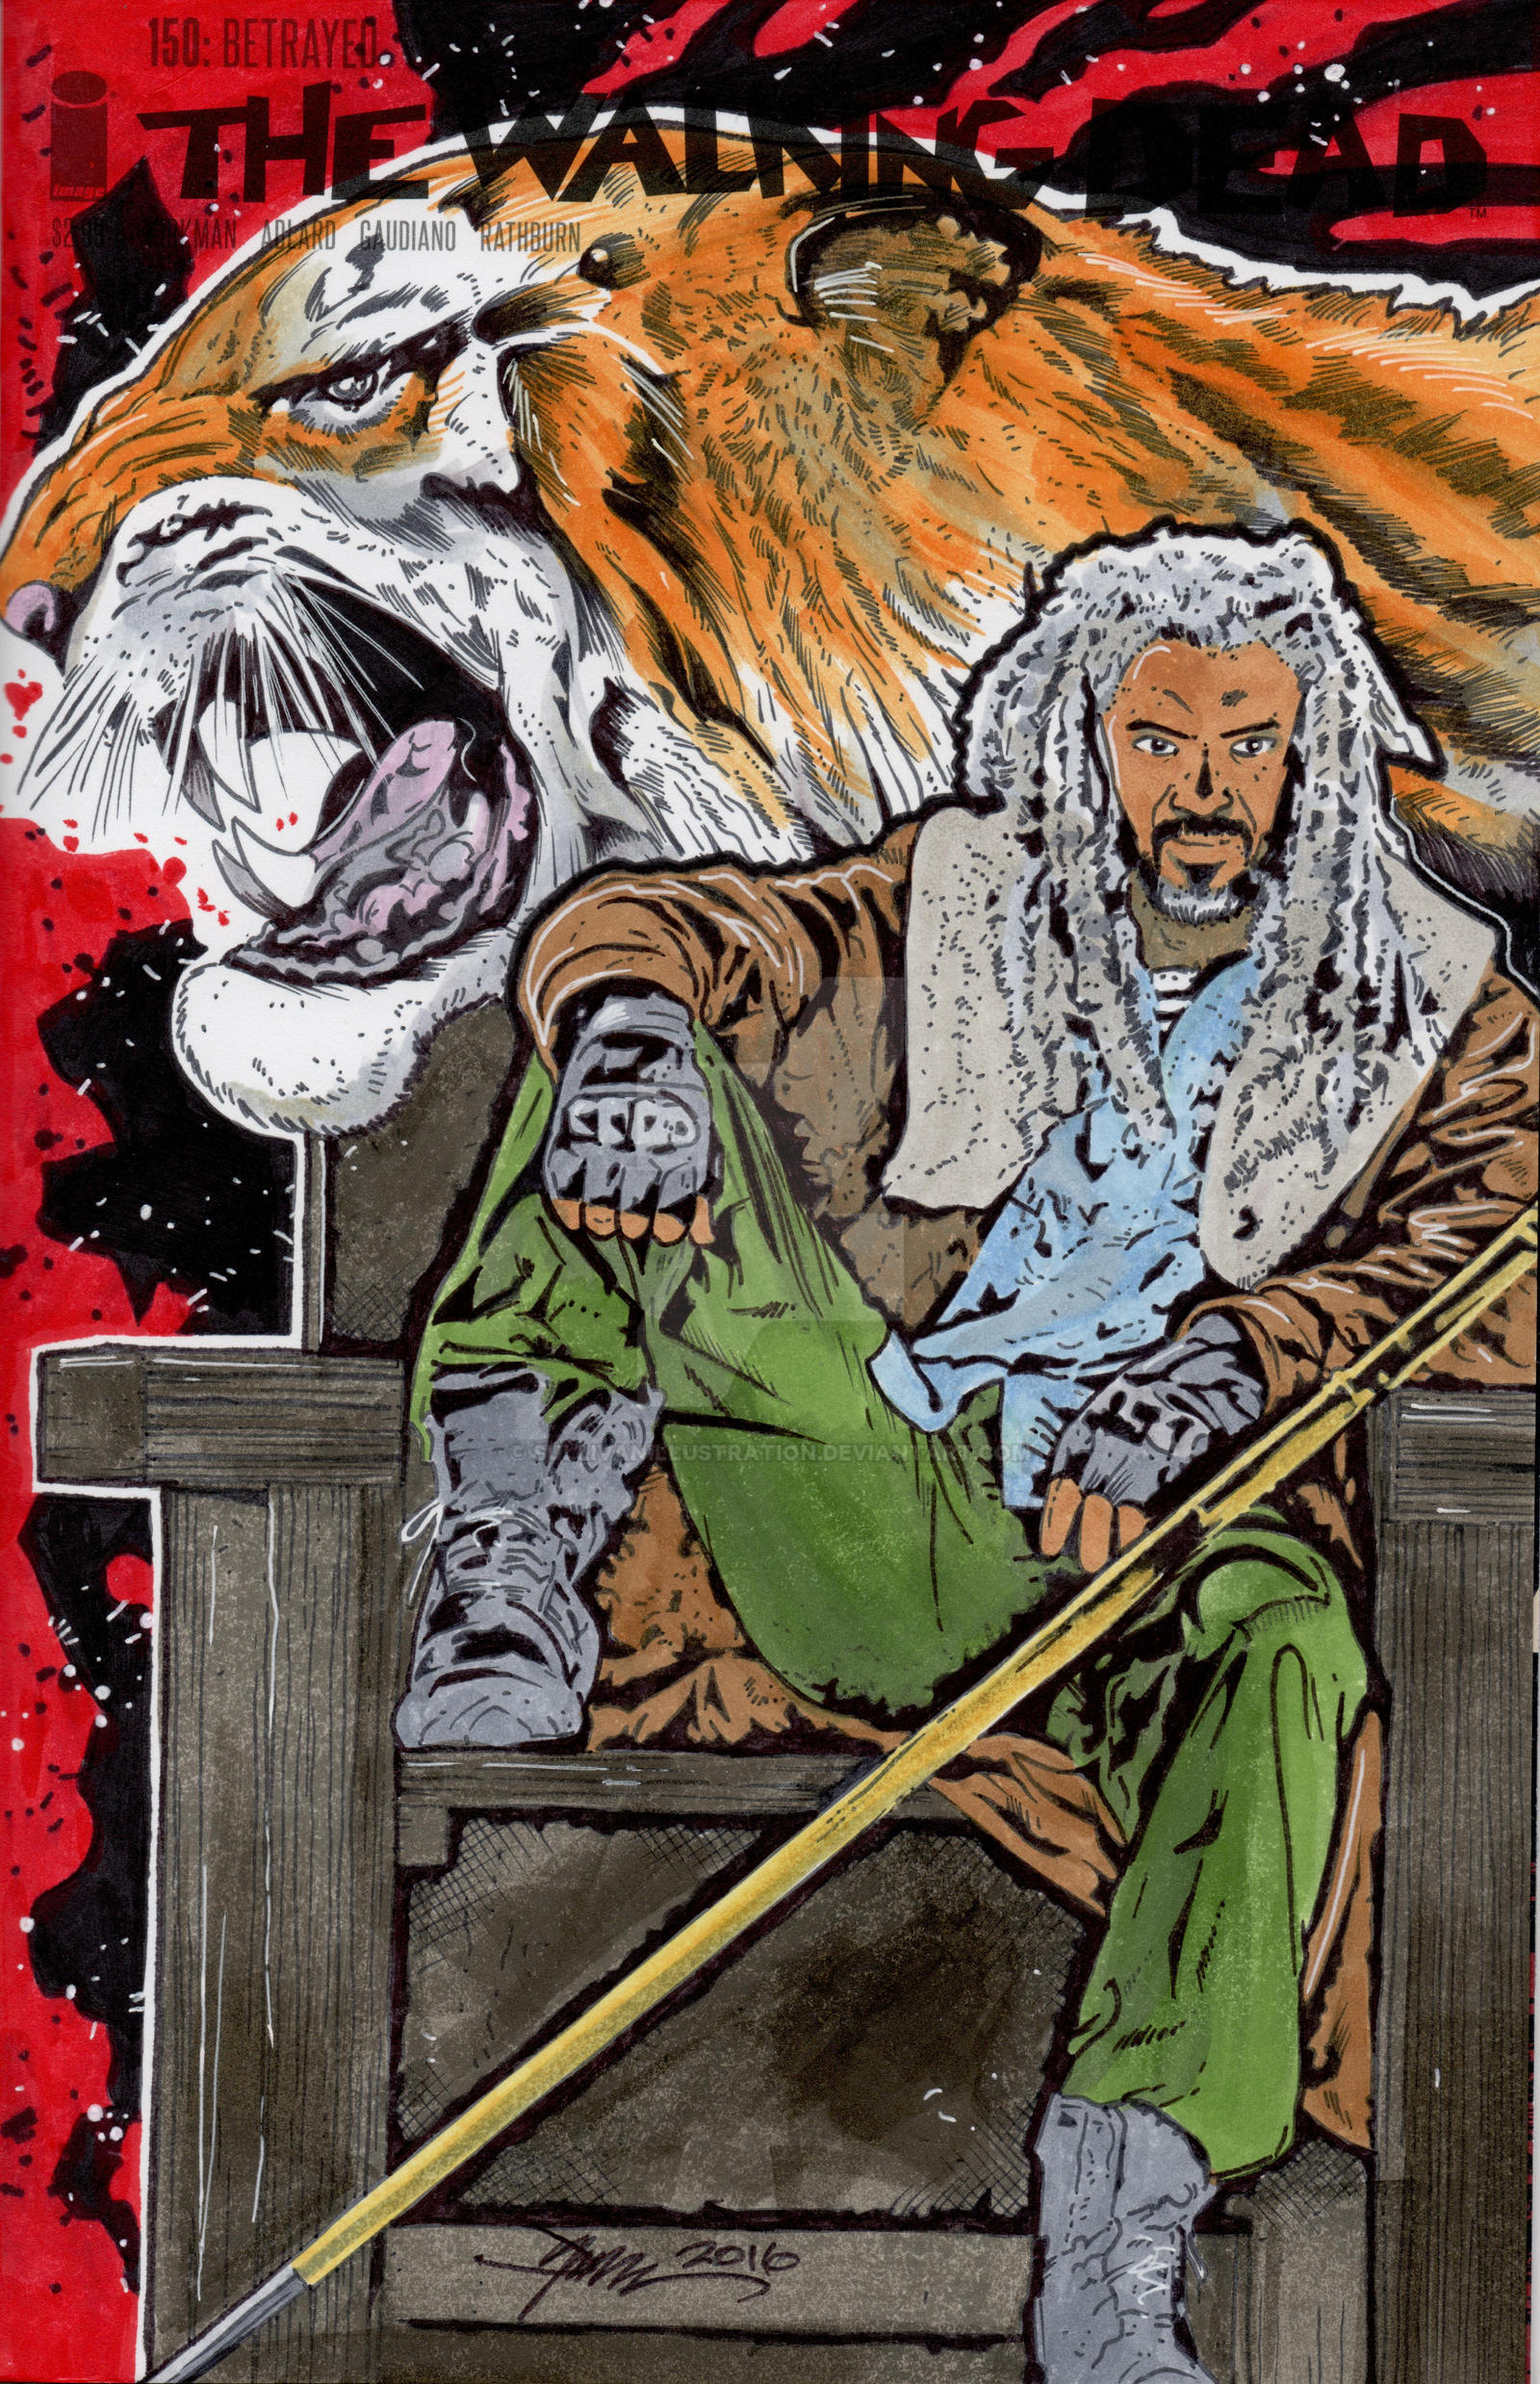 Walking Dead Ezekiel Hand Drawn Sketch Cover by sullivanillustration